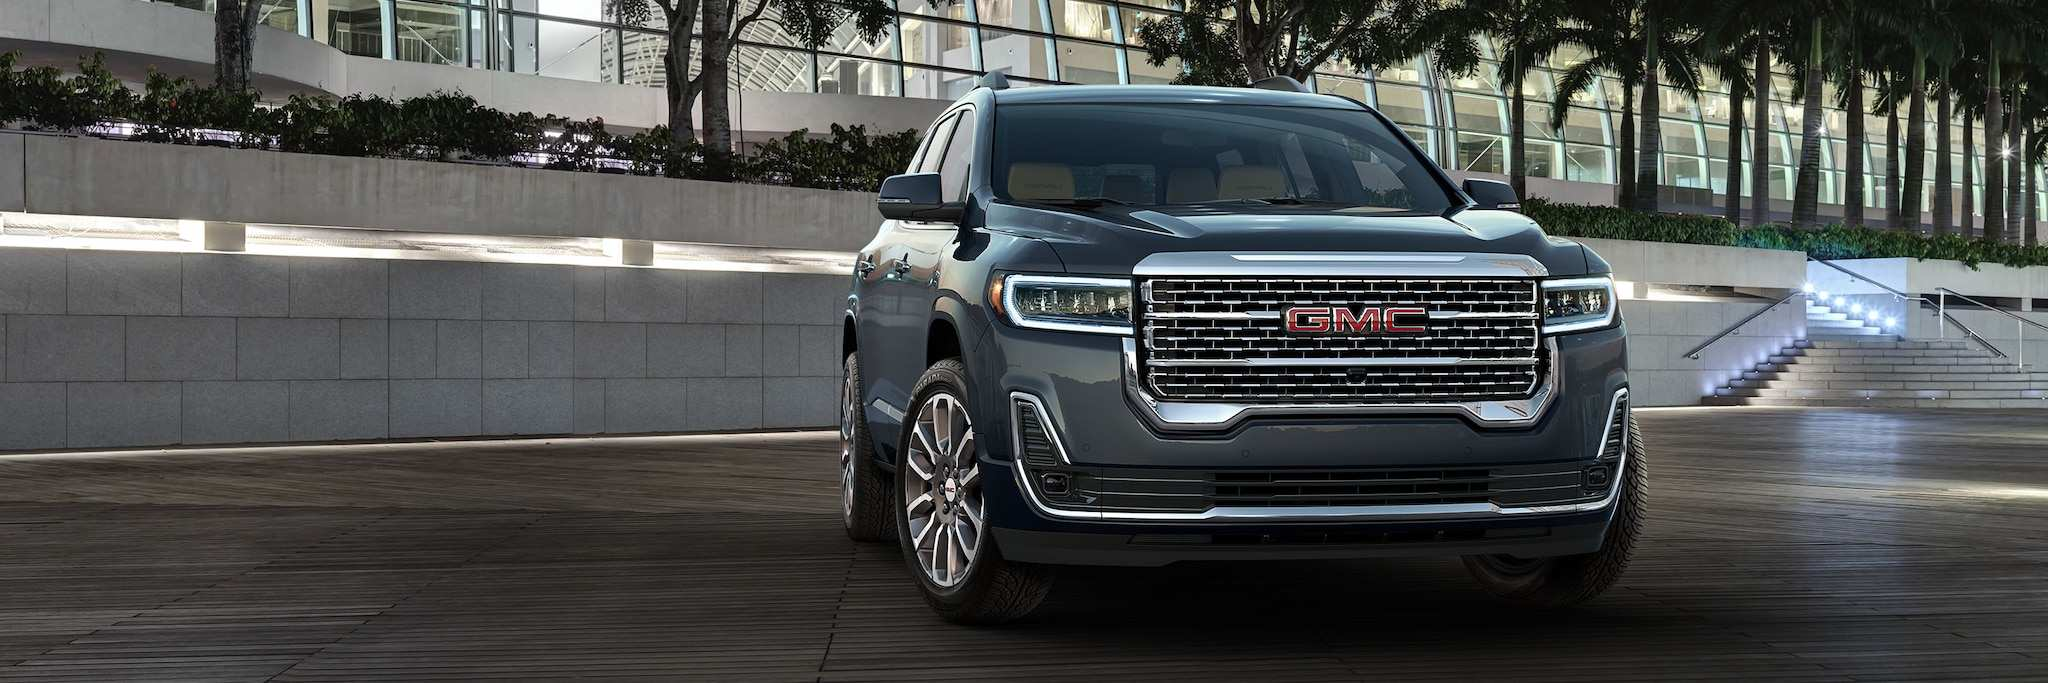 89 Concept of New Gmc 2020 Redesign with New Gmc 2020